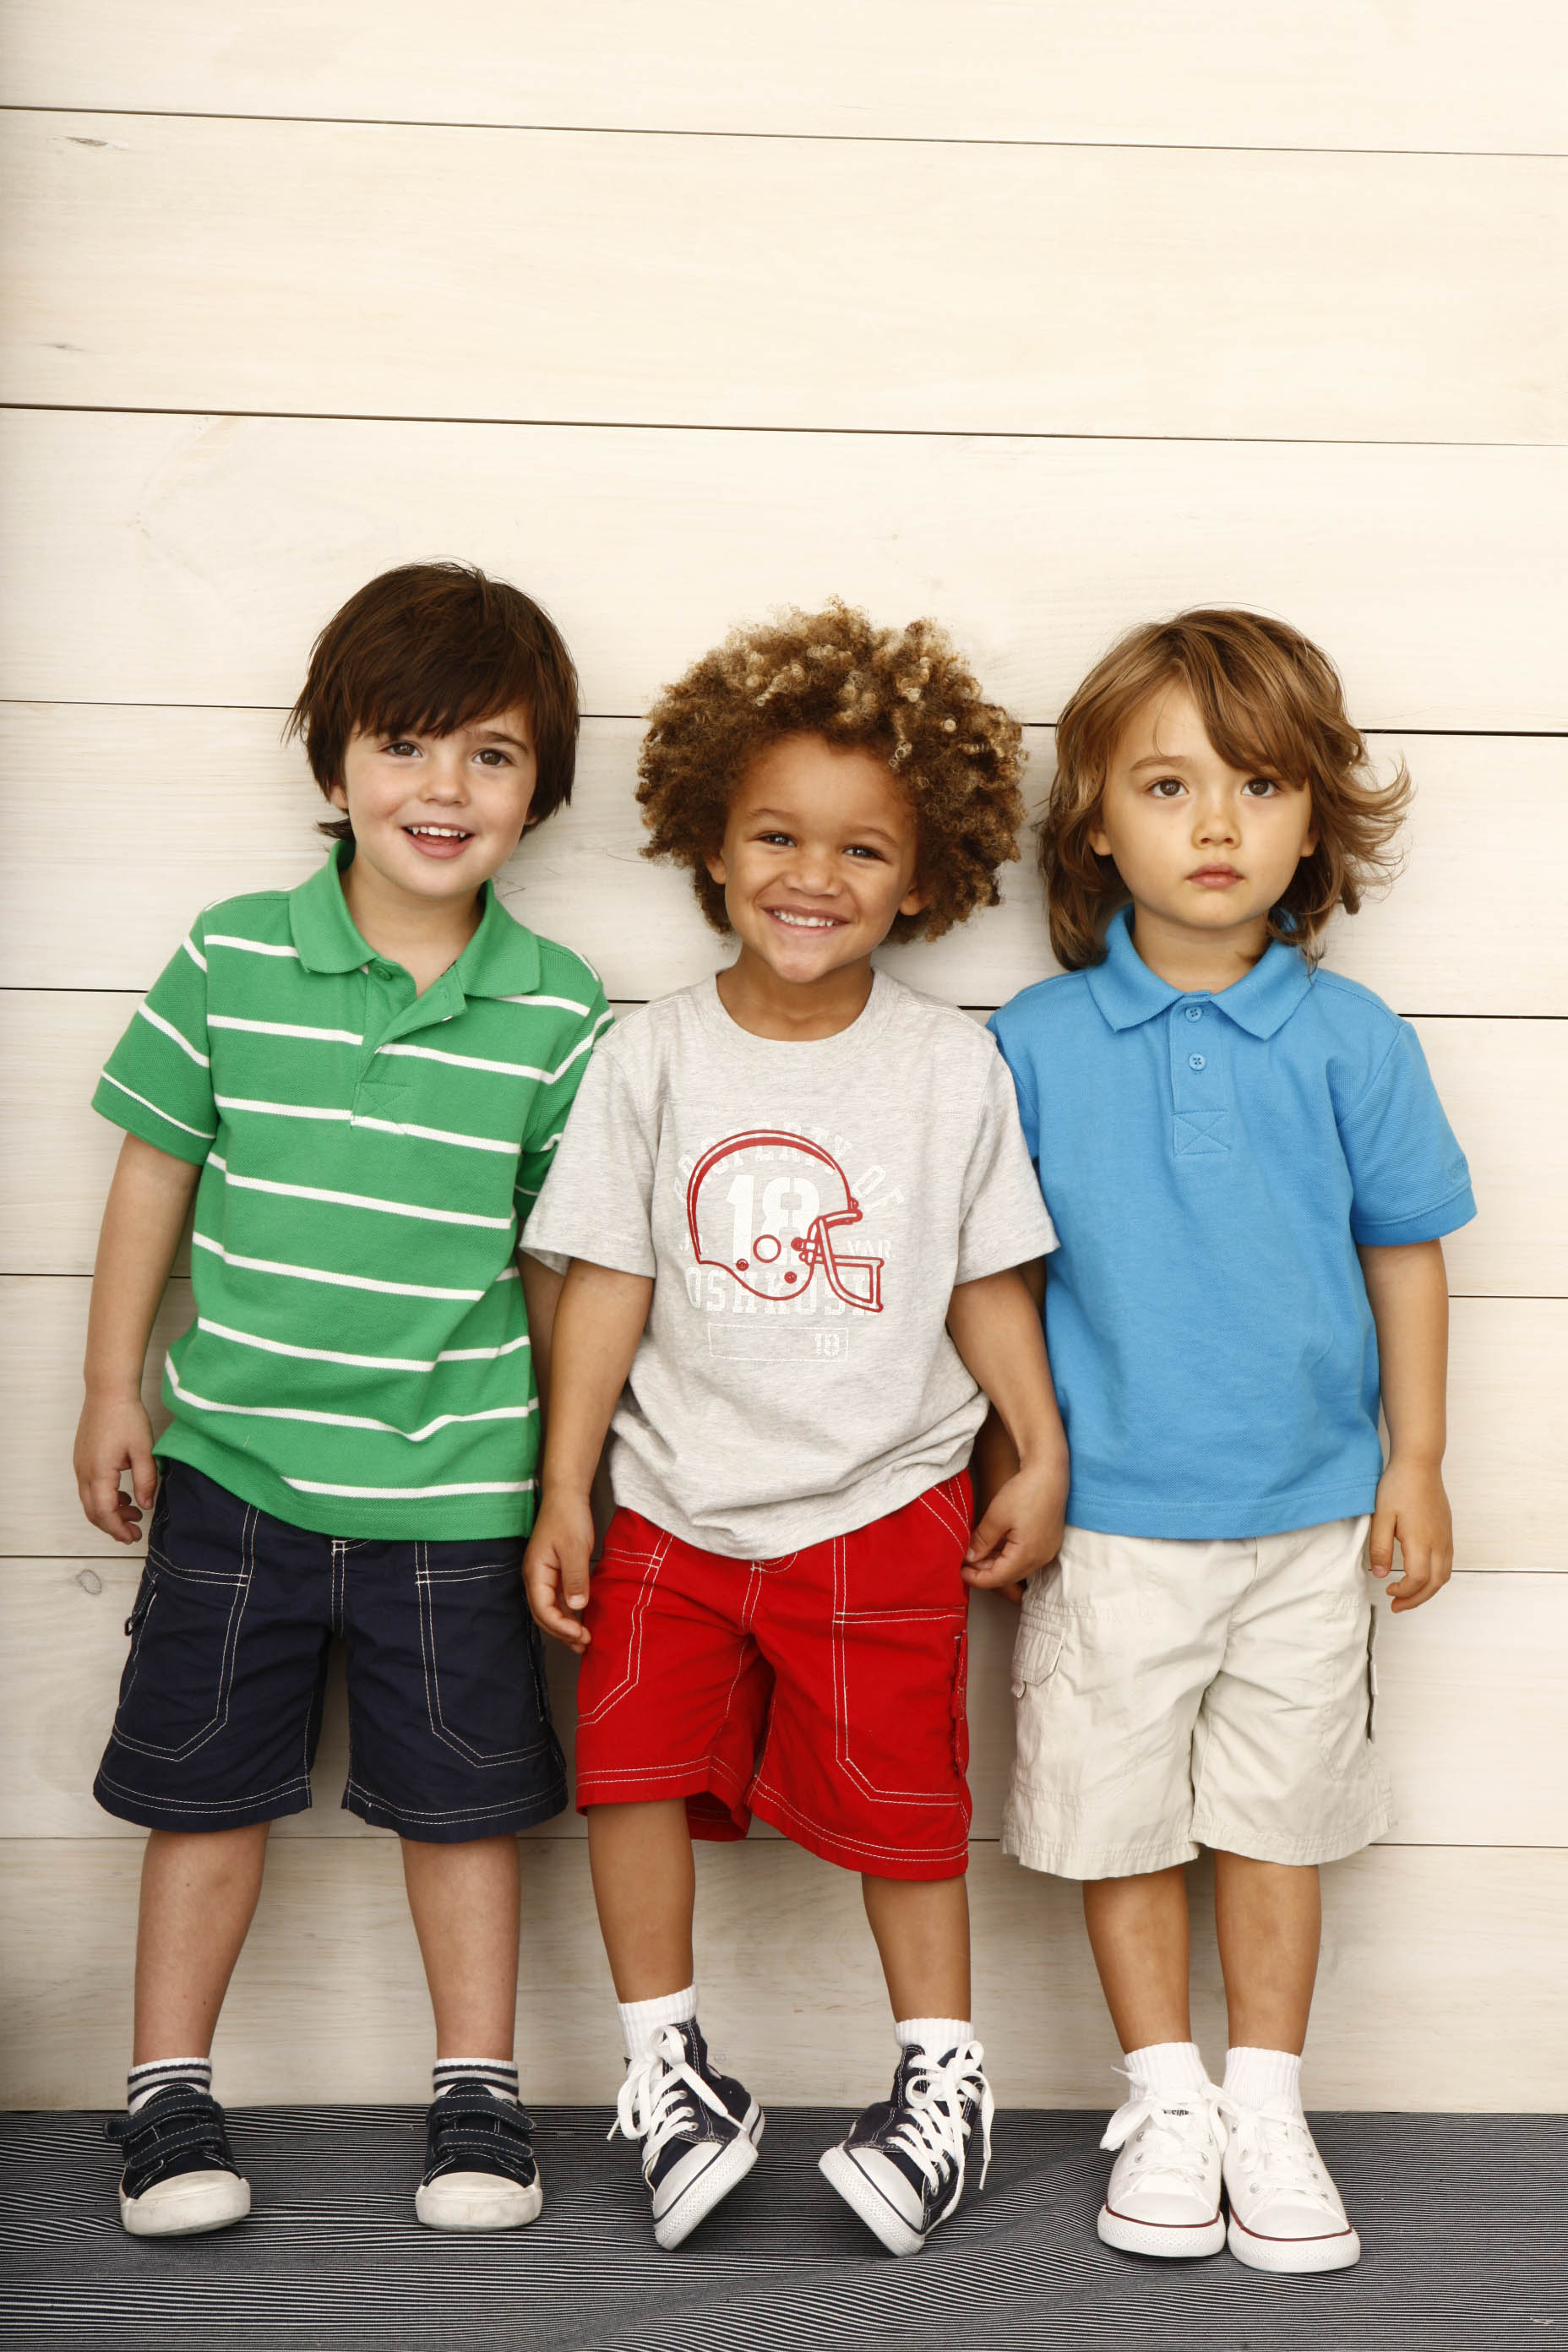 Oshkosh Rolls Out B Gosh Basics The Next Kid Thing